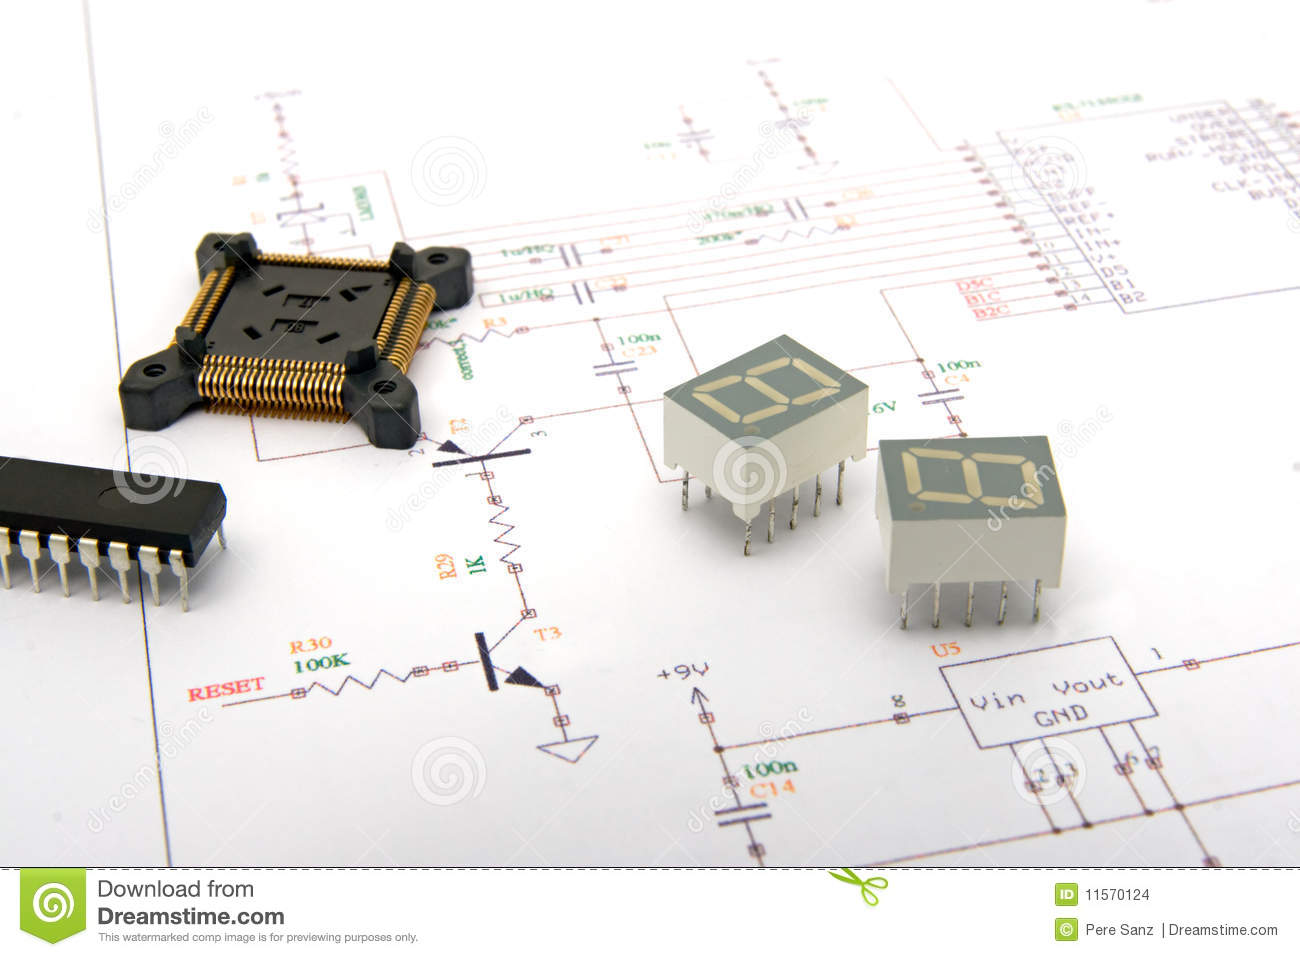 electronic components on schematics stock photo image of rh dreamstime com Round LED Lights Circuit Board Stacked Circular Circuit Boards